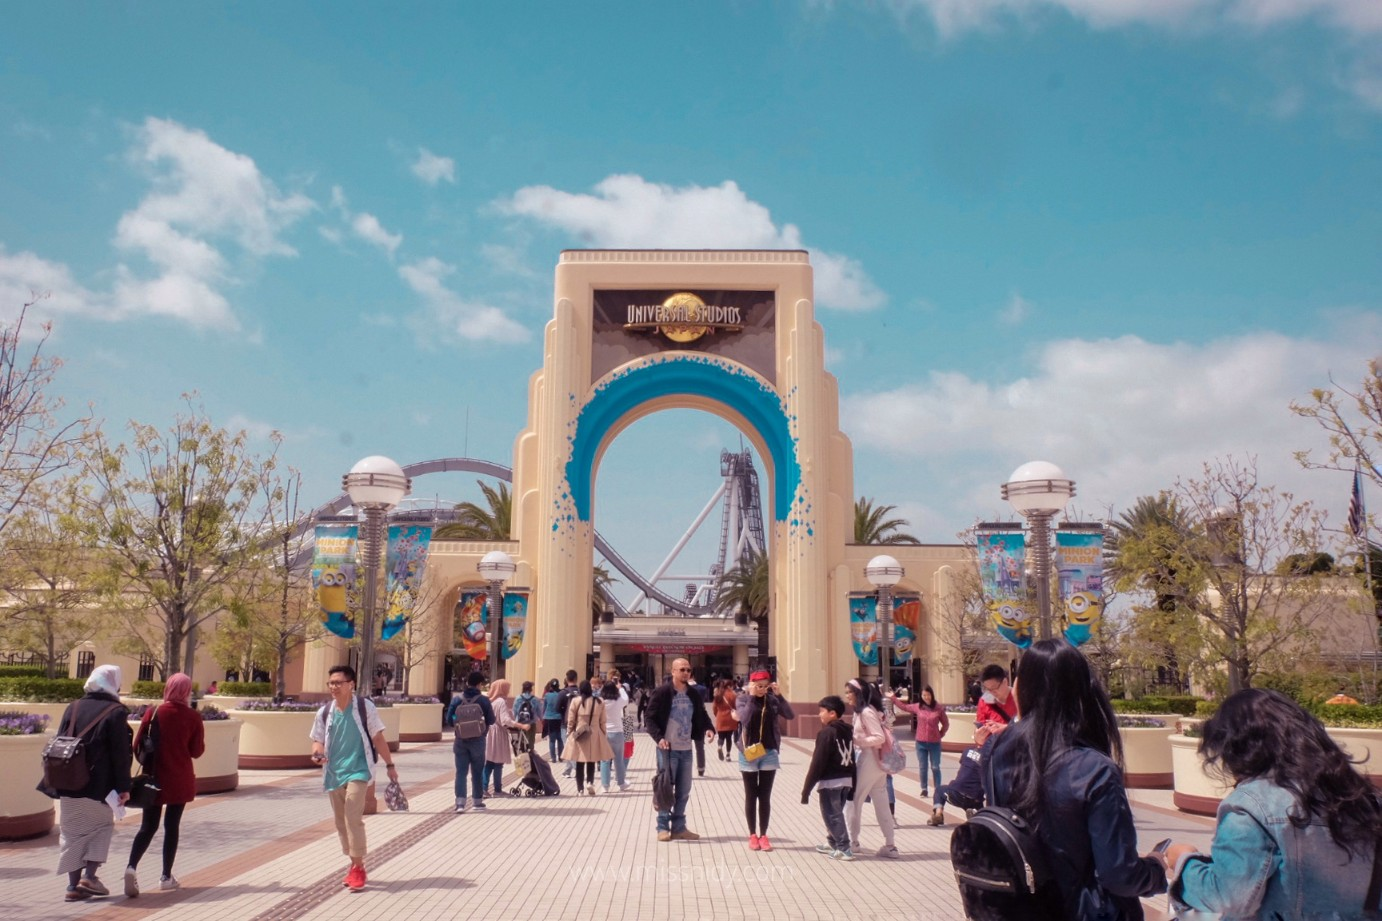 UNIVERSAL STUDIO JAPAN TICKET PRICE